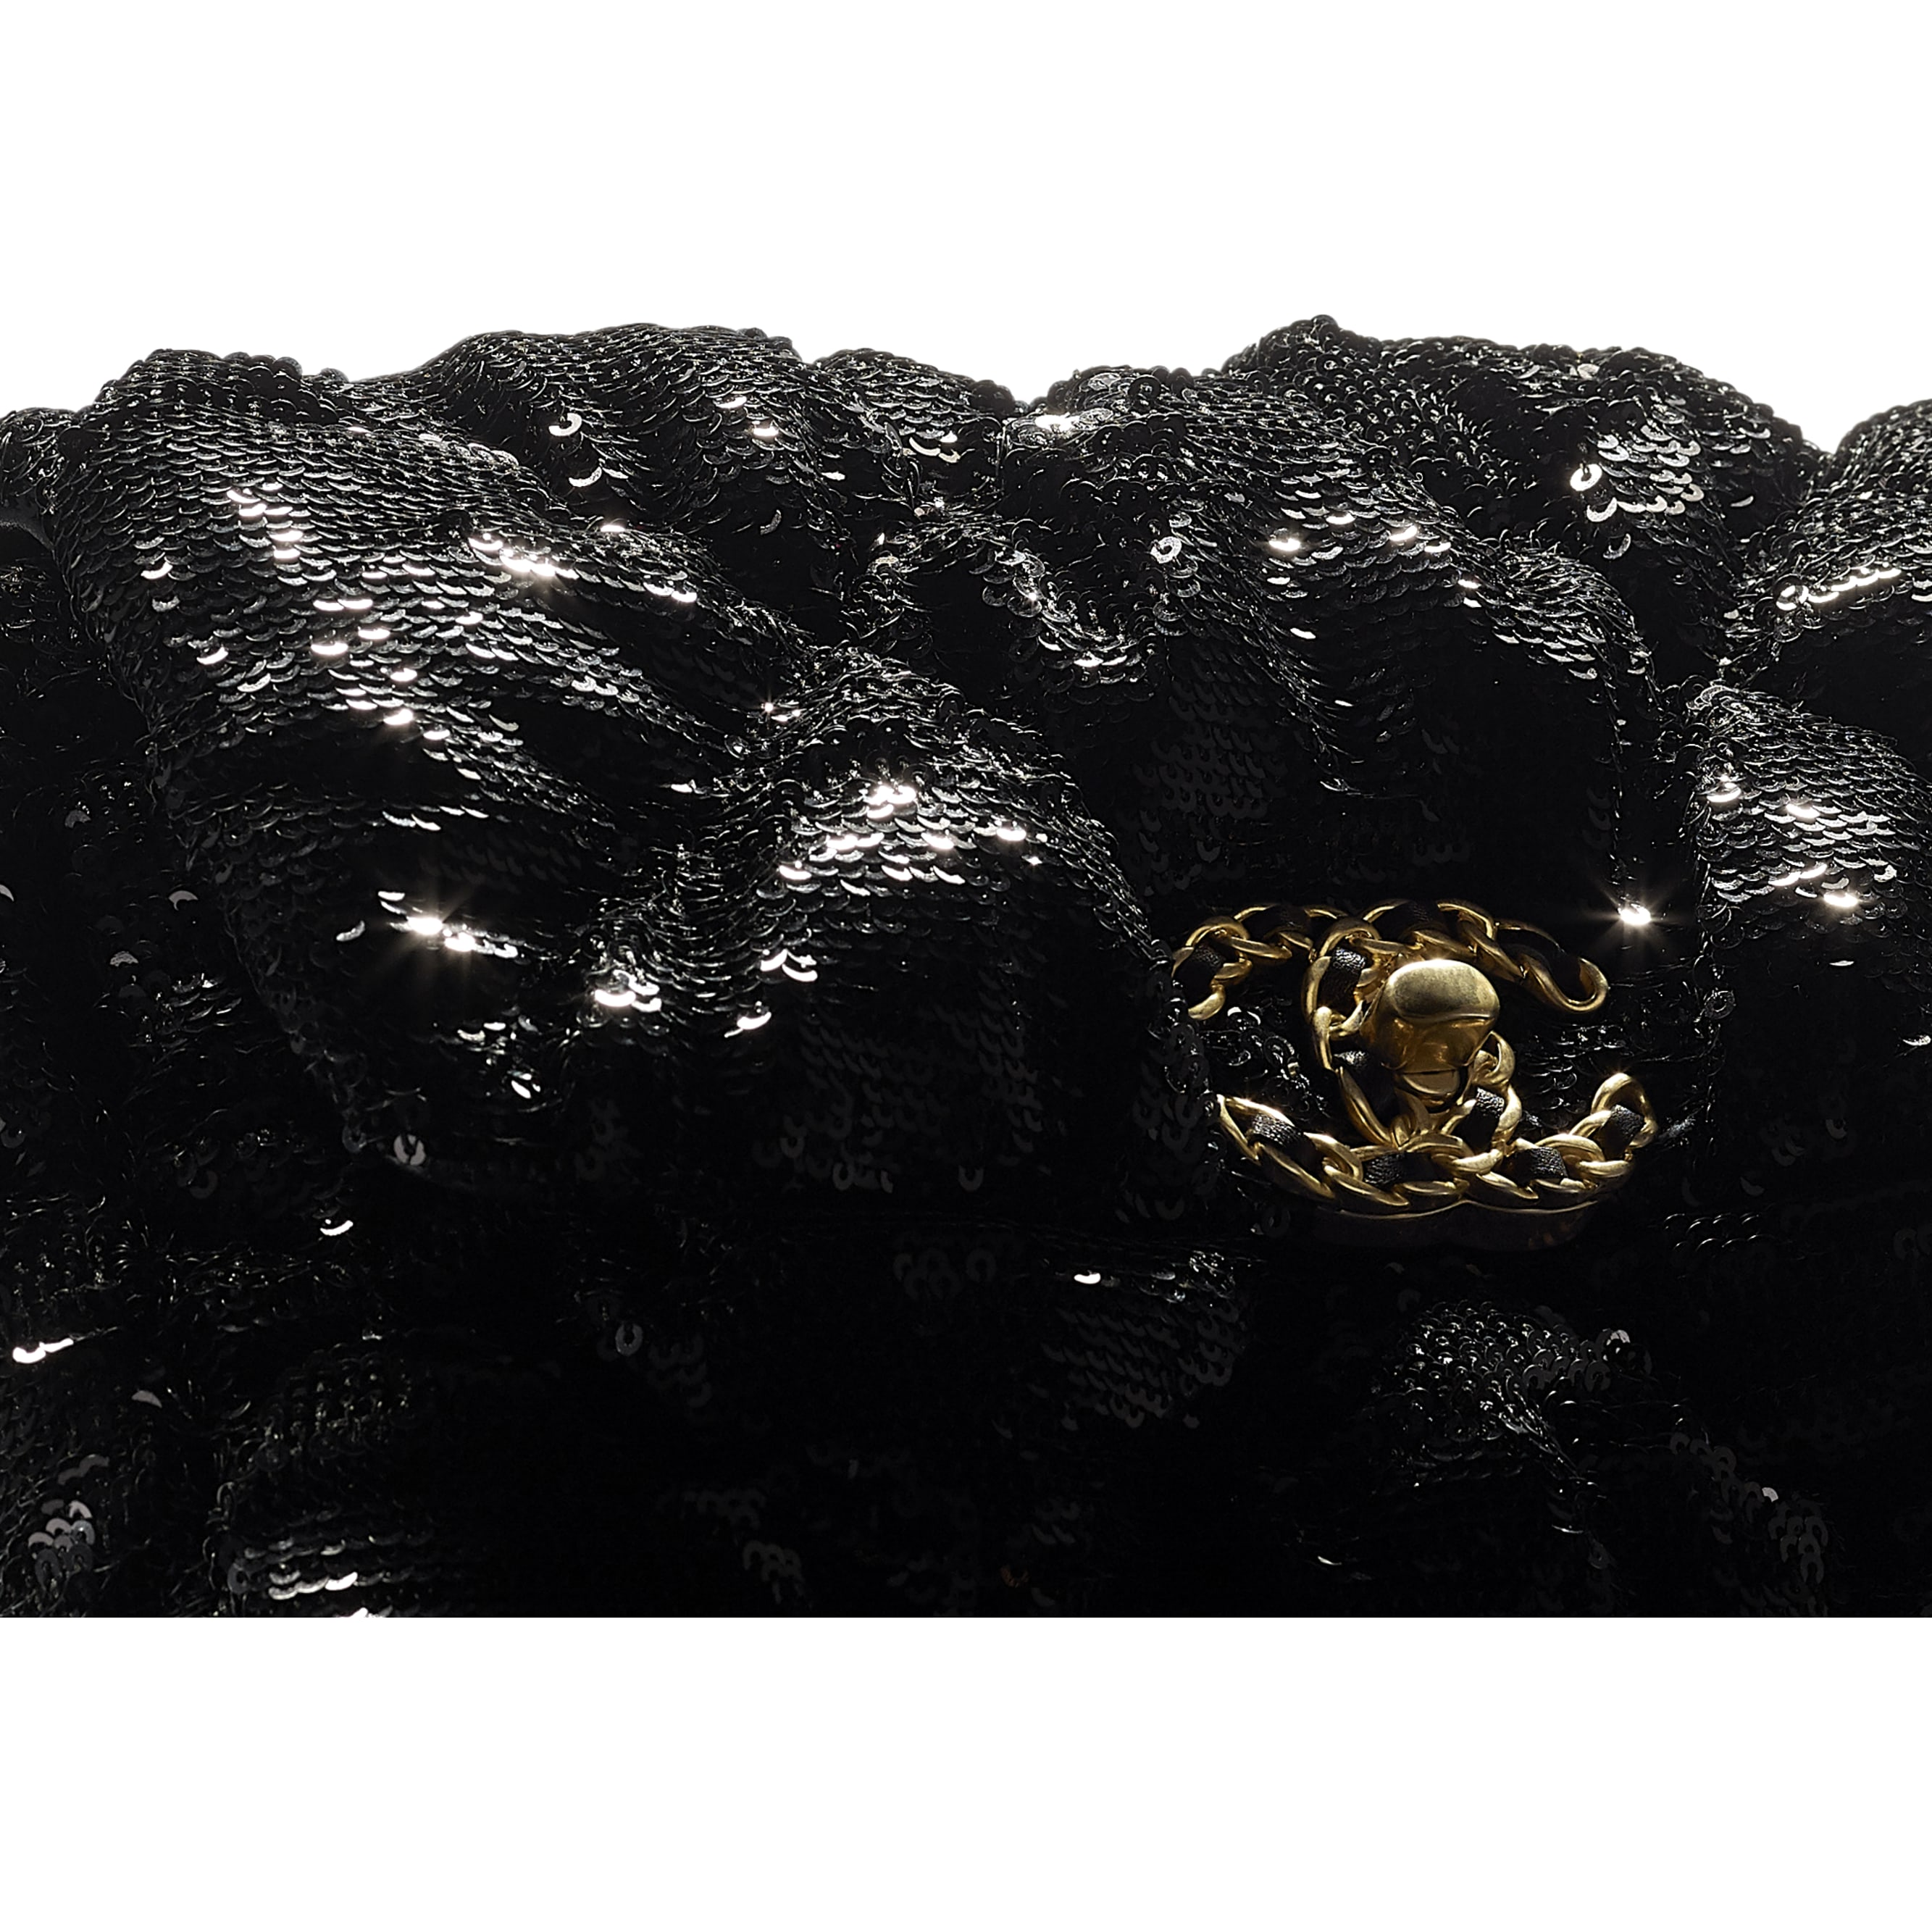 CHANEL 19 Flap Bag - Black - Sequins, Gold-Tone, Siver-Tone & Ruthenium-Finish Metal - CHANEL - Extra view - see standard sized version